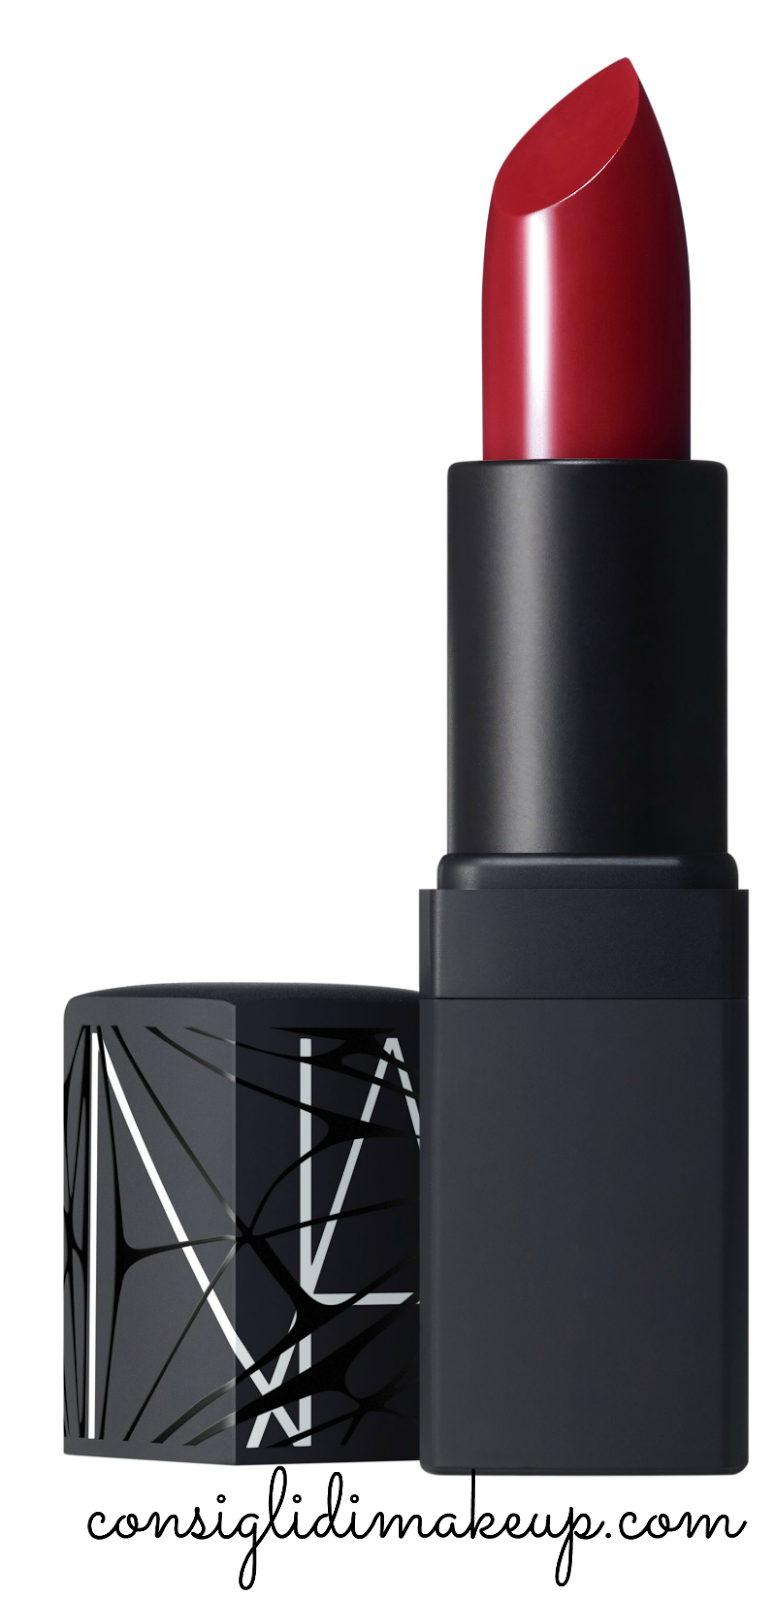 Preview: Novità NARS Inverno 2014